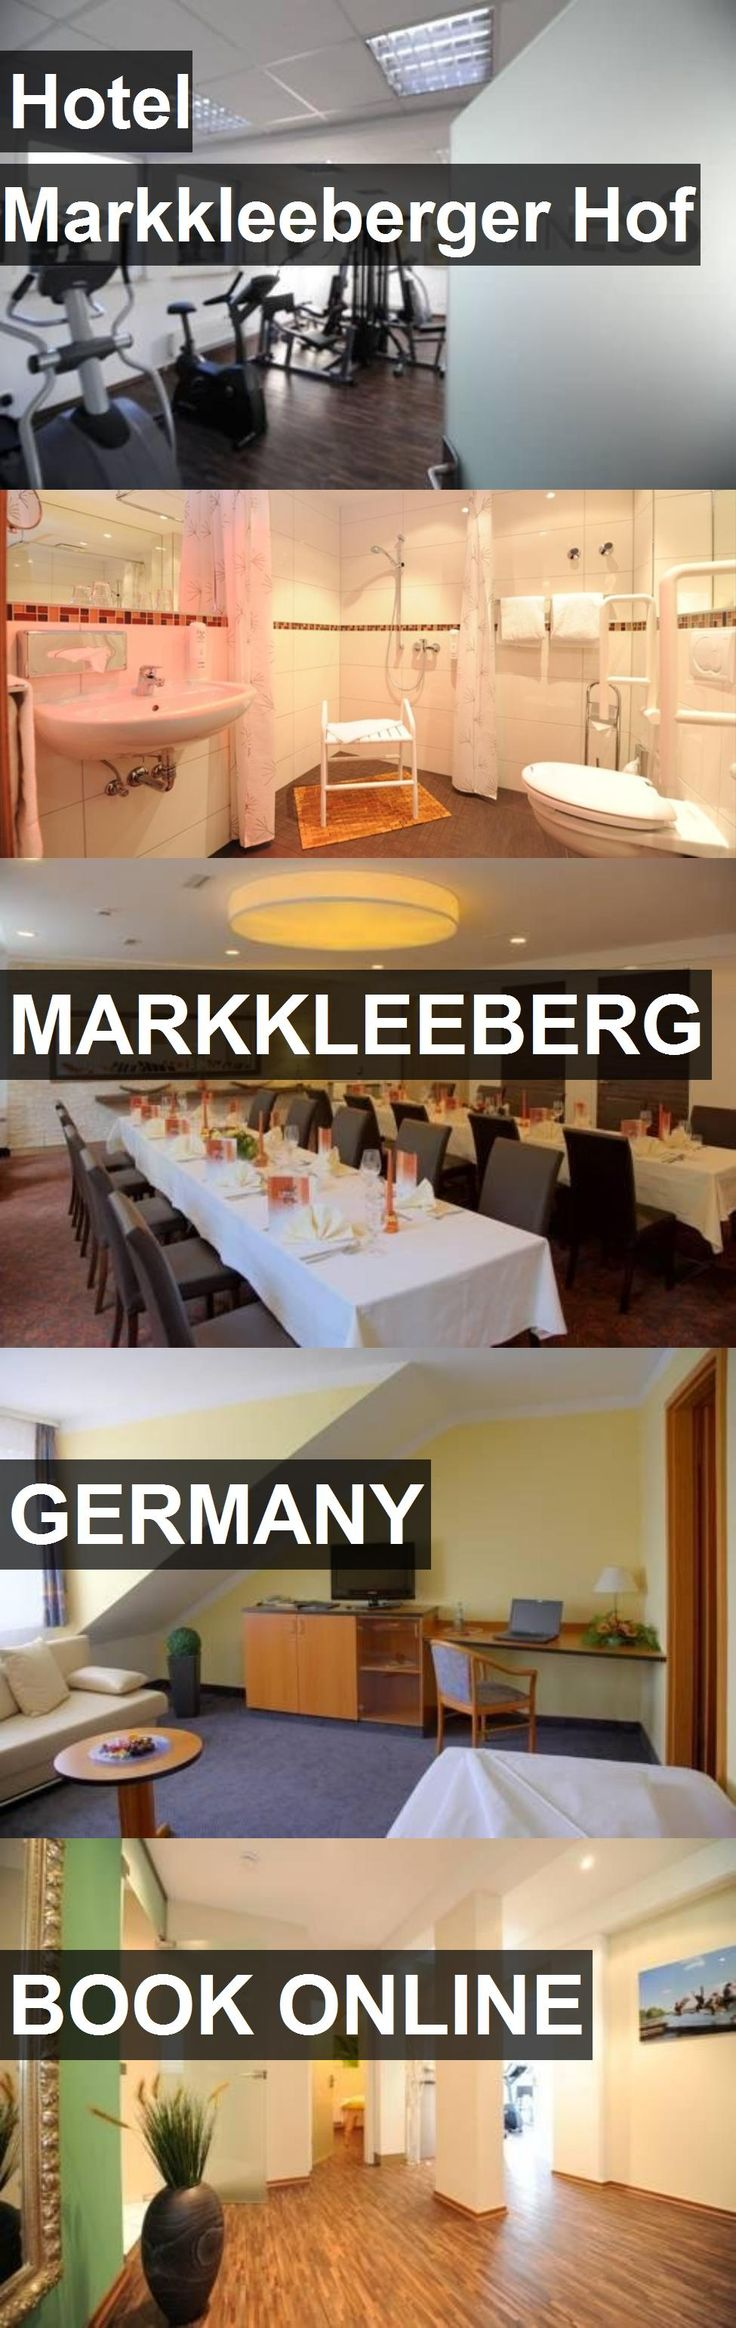 Hotel Markkleeberger Hof in Markkleeberg, Germany. For more information, photos, reviews and best prices please follow the link. #Germany #Markkleeberg #travel #vacation #hotel